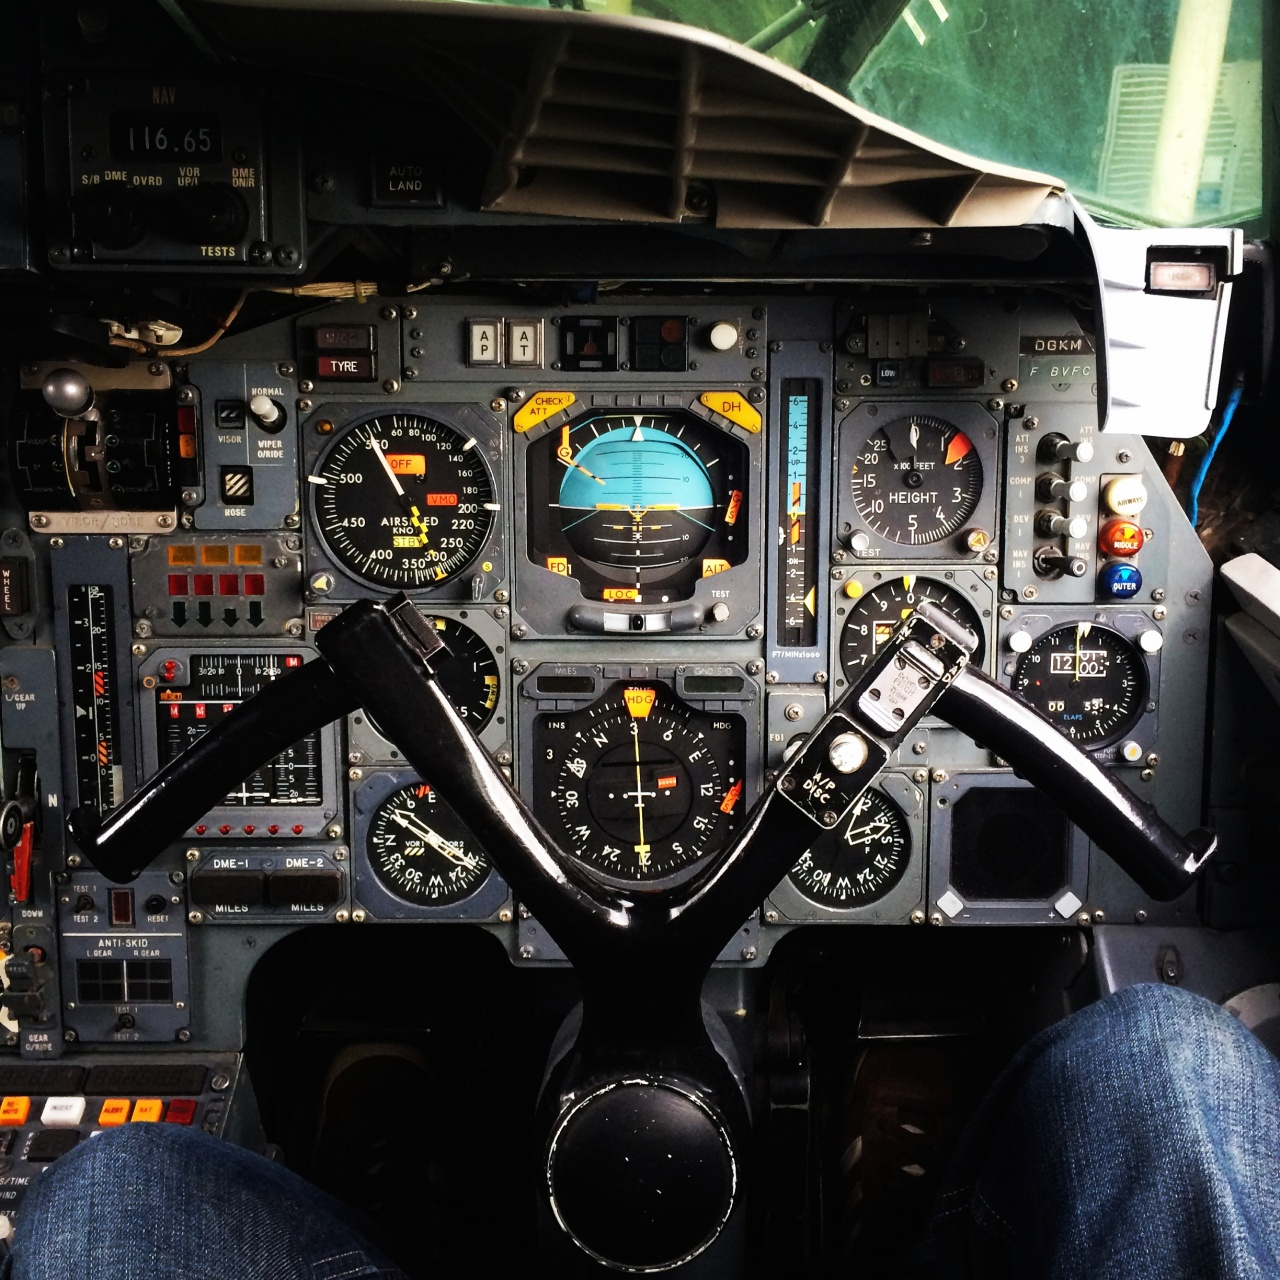 The drivers seat, Concorde